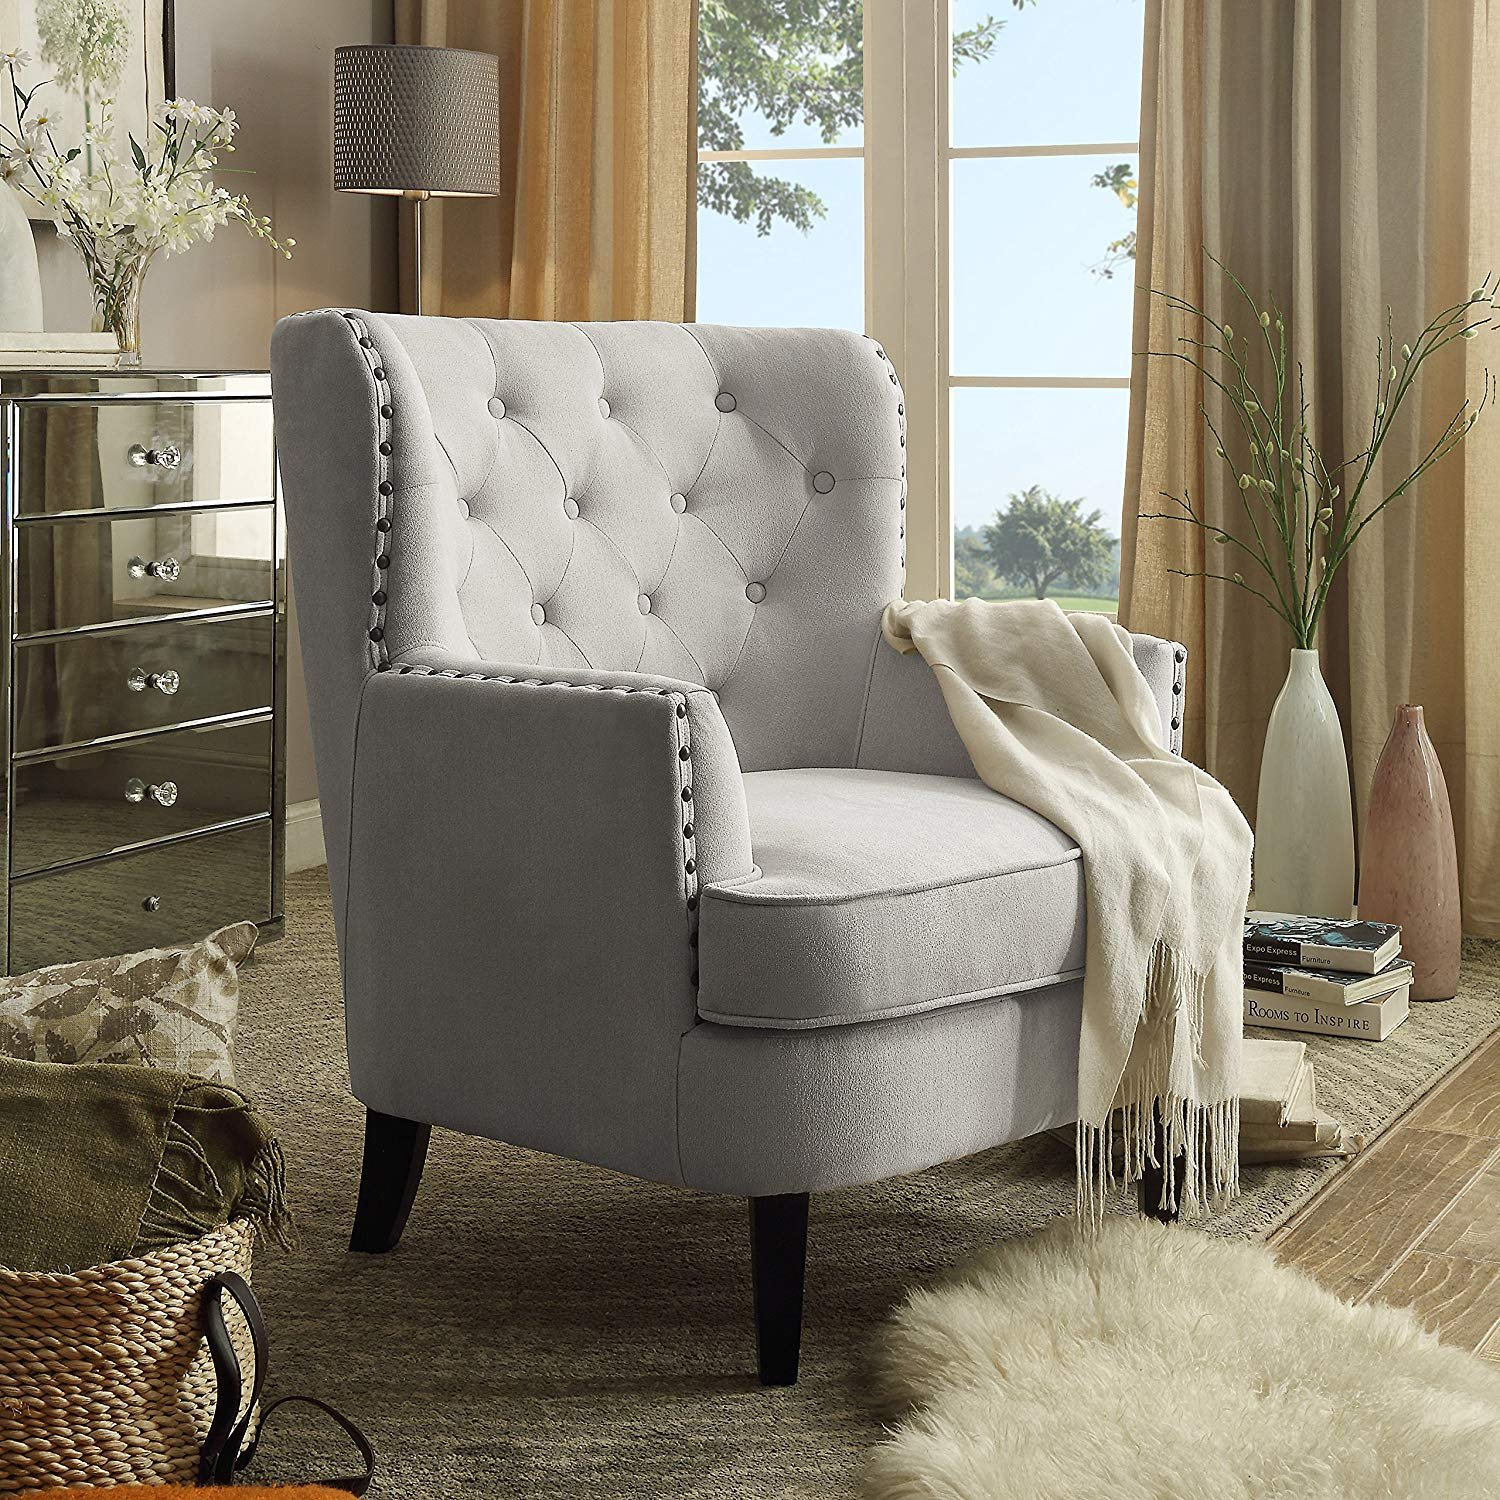 Rosevera Home Gustavo Collection Fabric Nailhead Club Chair, Contemporary Accent Chairs, Beige